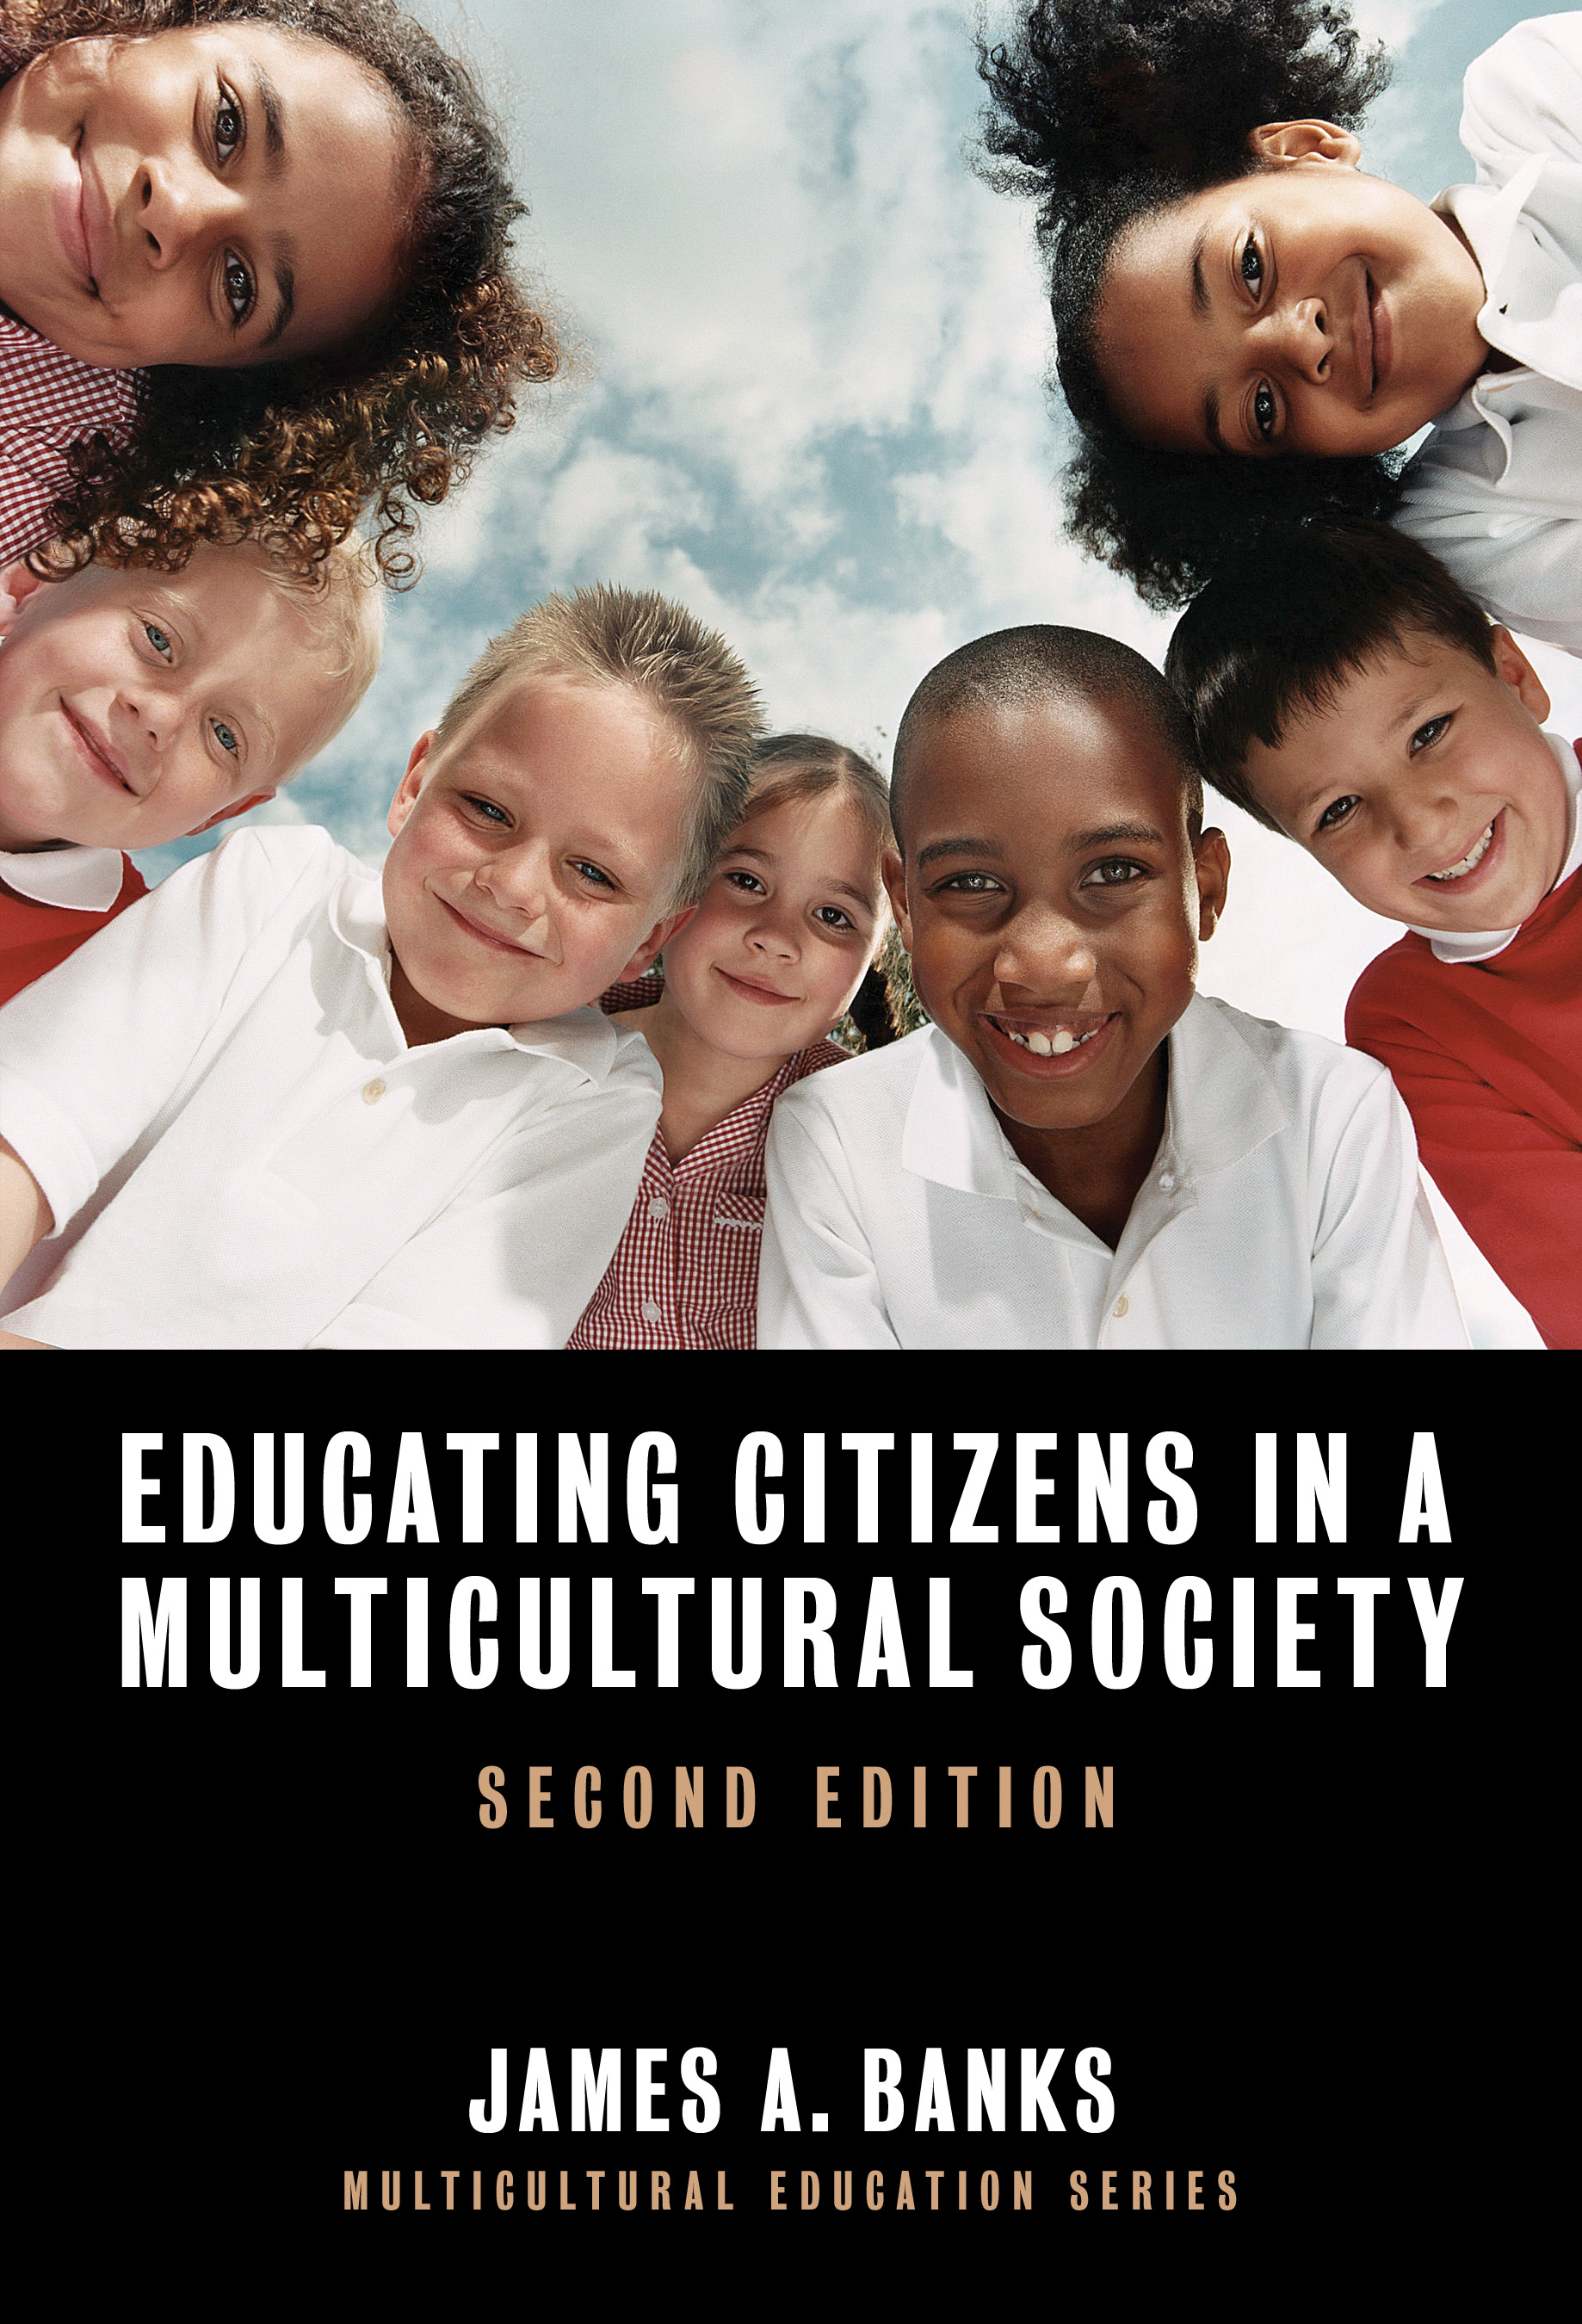 Educating Citizens in a Multicultural Society, Second Edition